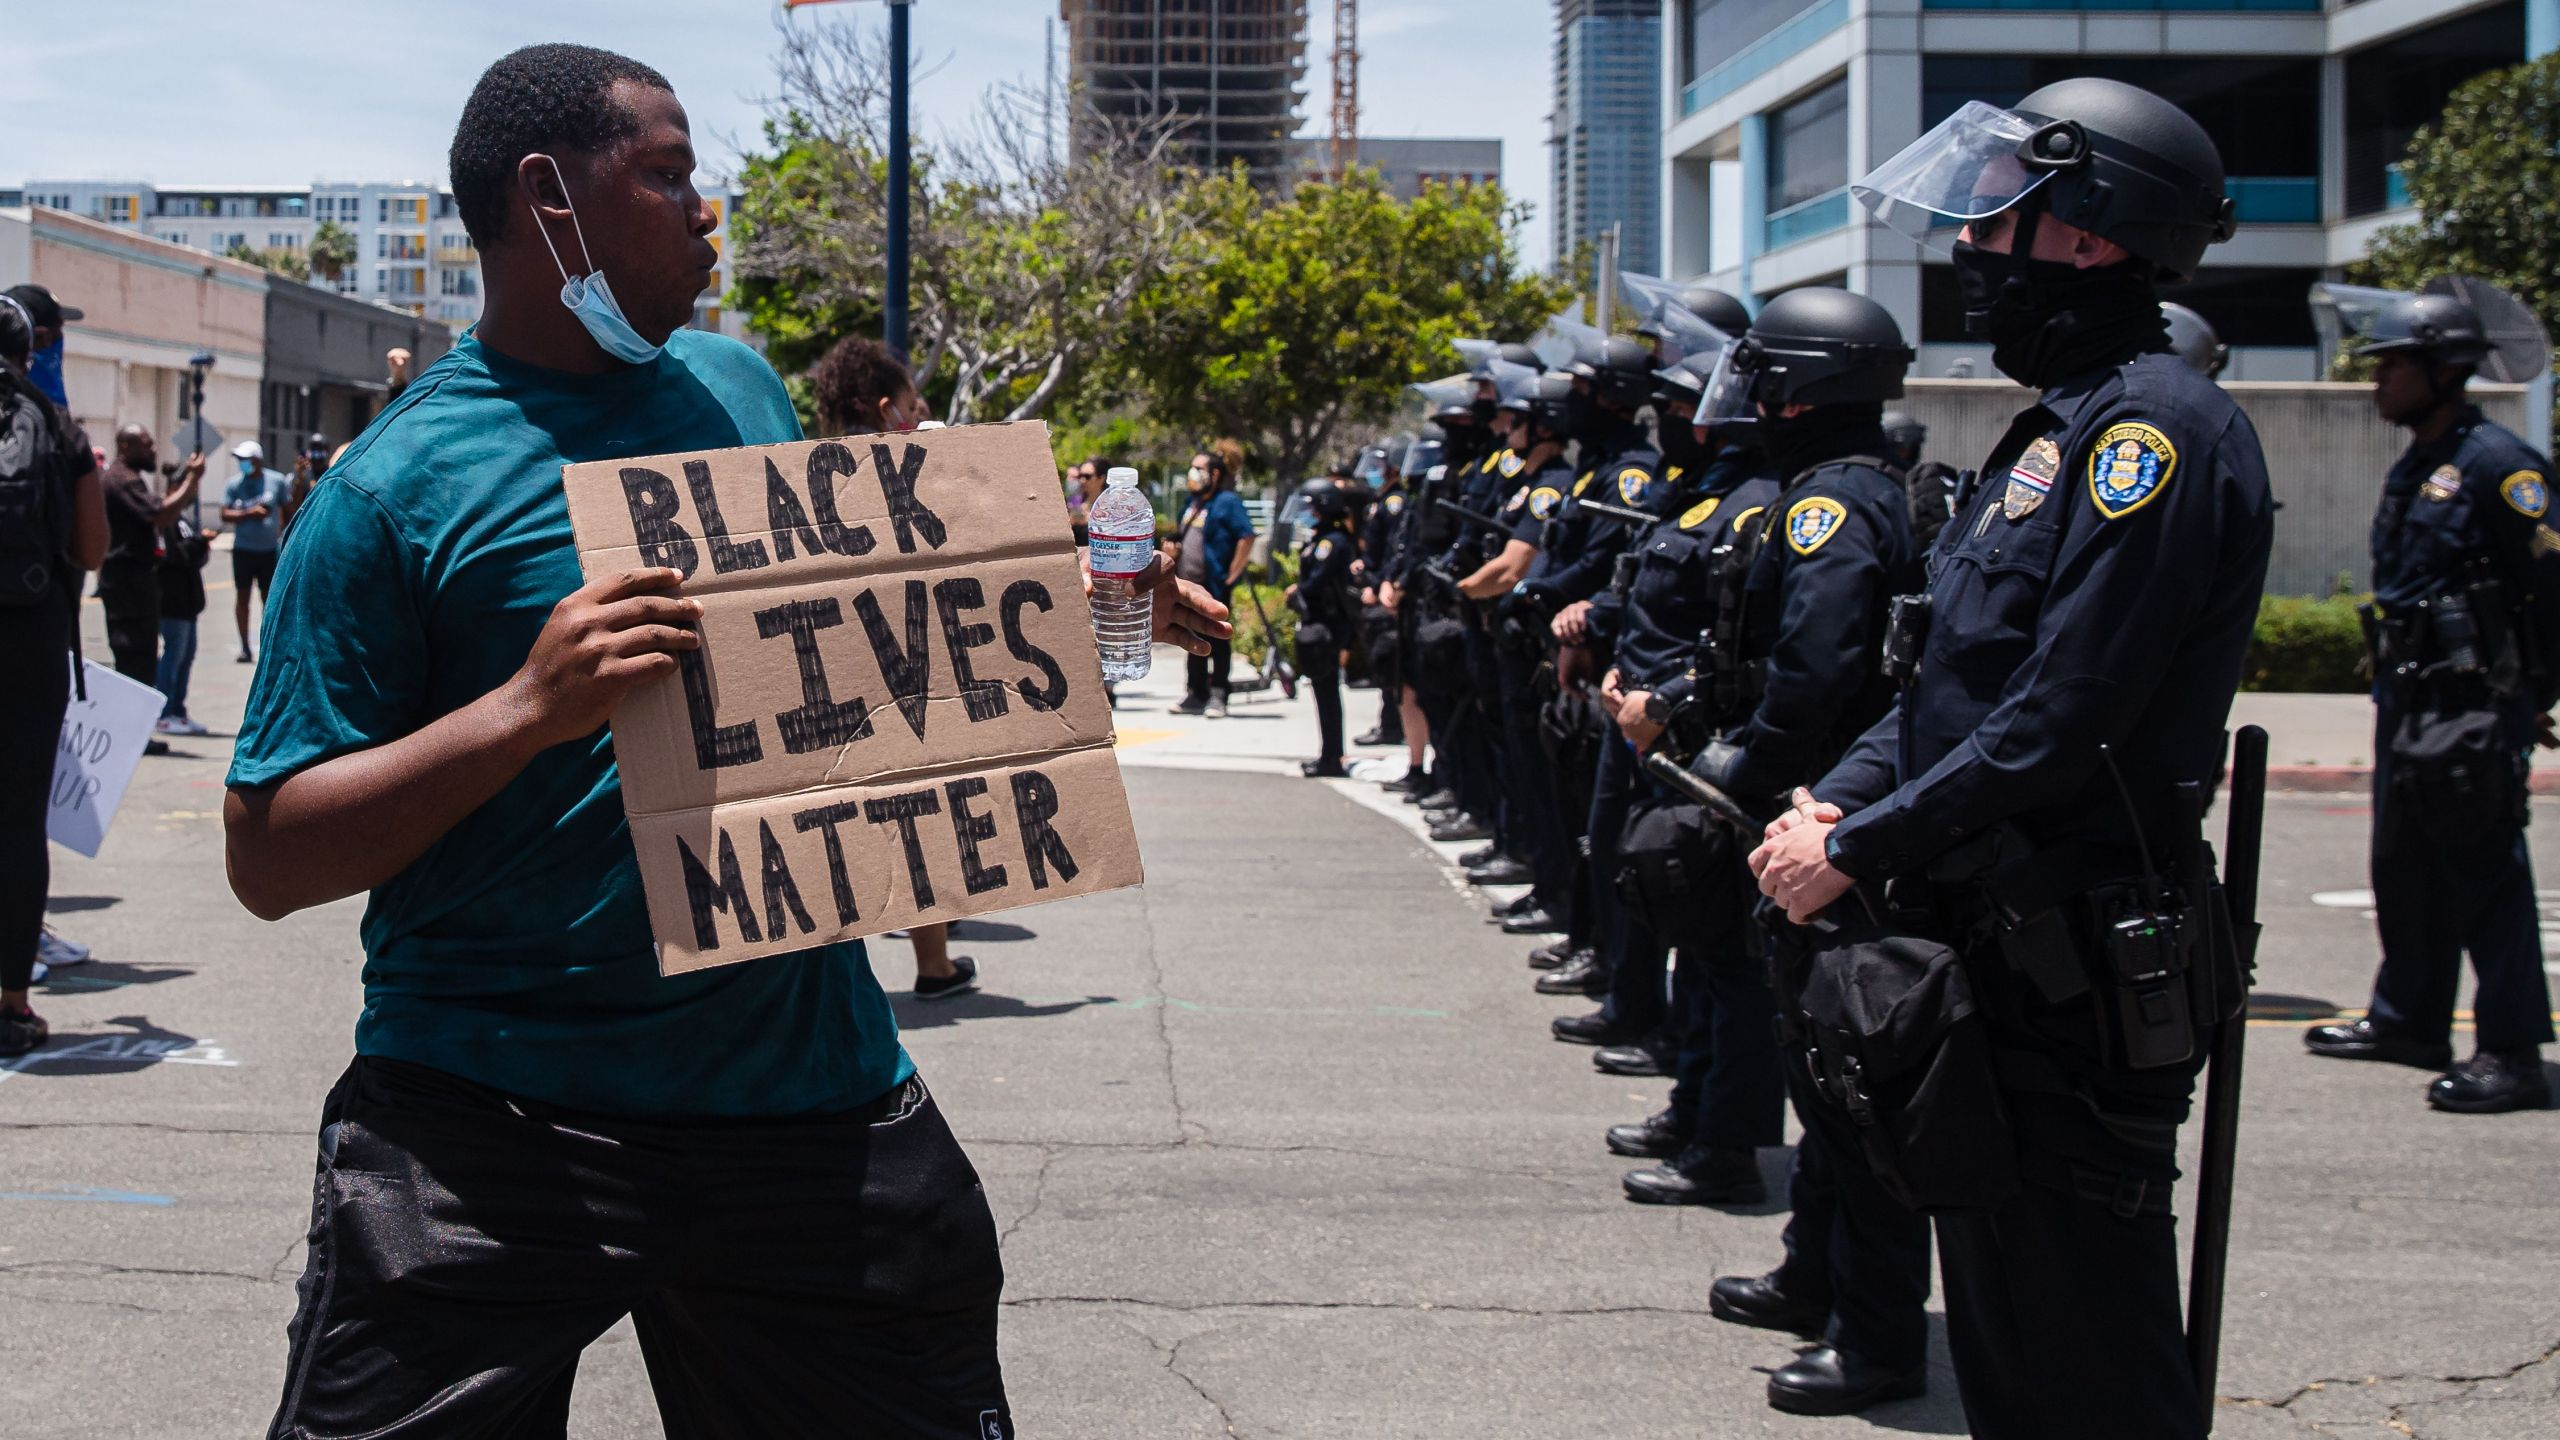 A man holds a Black Lives Matter sign in front of police in downtown San Diego on May 31, 2020. (ARIANA DREHSLER / AFP / Getty Images)